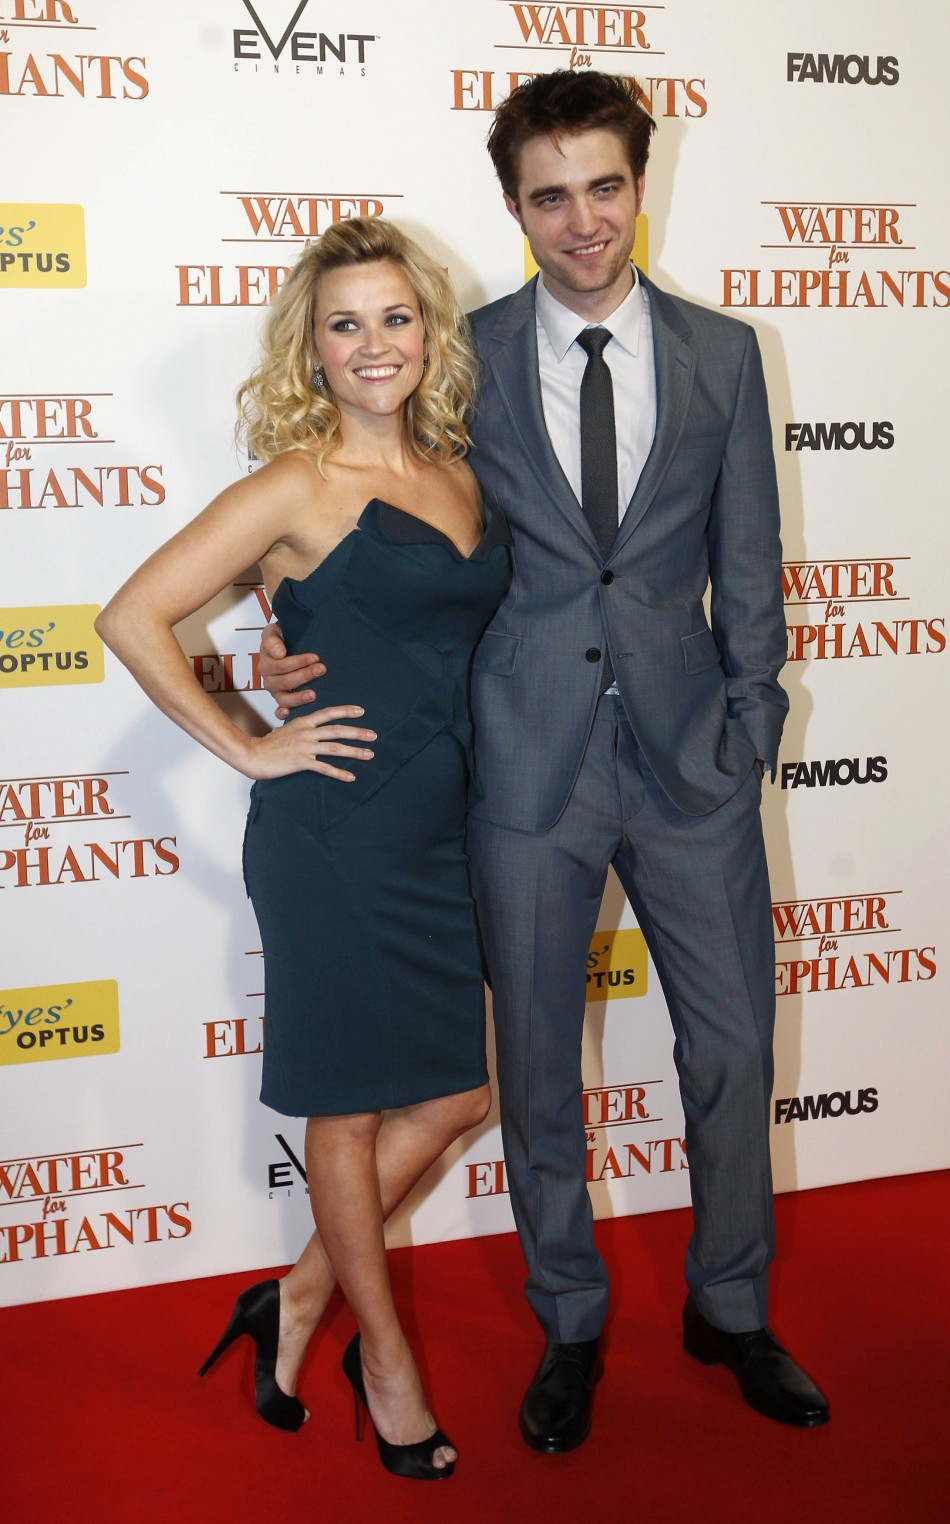 Reese Witherspoon and Robert Pattinson - 37.1m